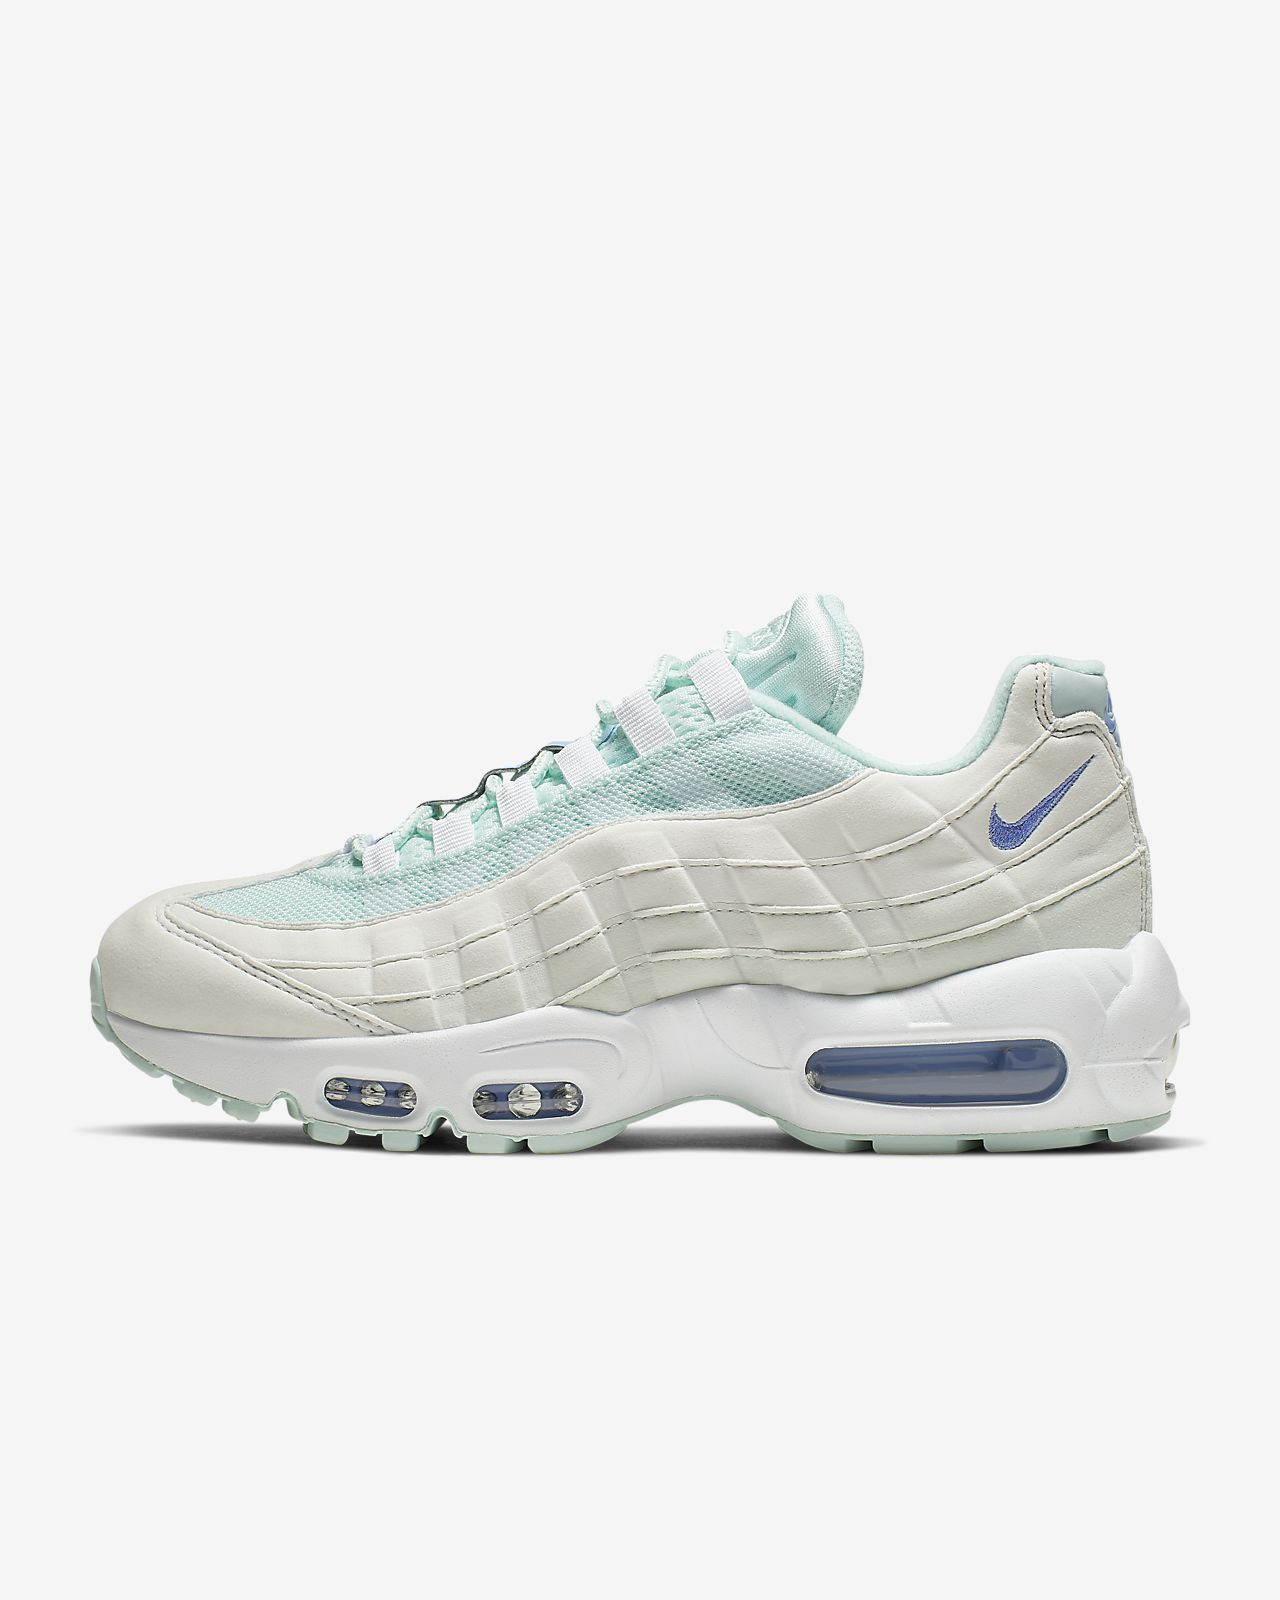 0e4c531bb7 Nike Air Max 95 Women's Shoe. Nike.com